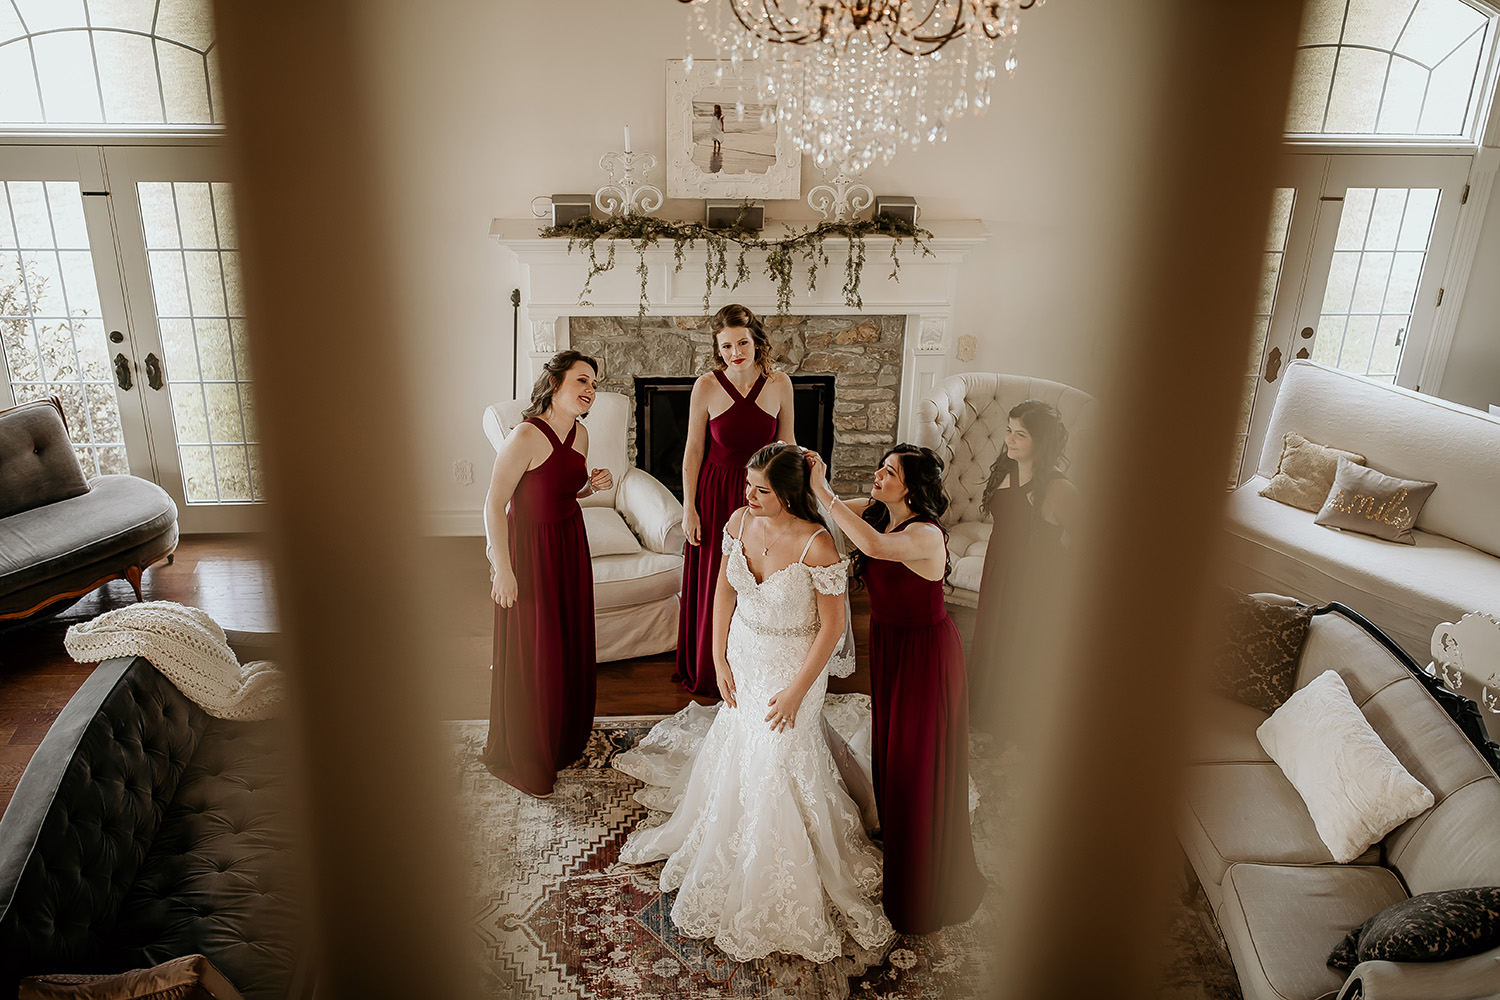 Bride and Bridesmaids in Red Dresses Get Dressed in Elegant Home